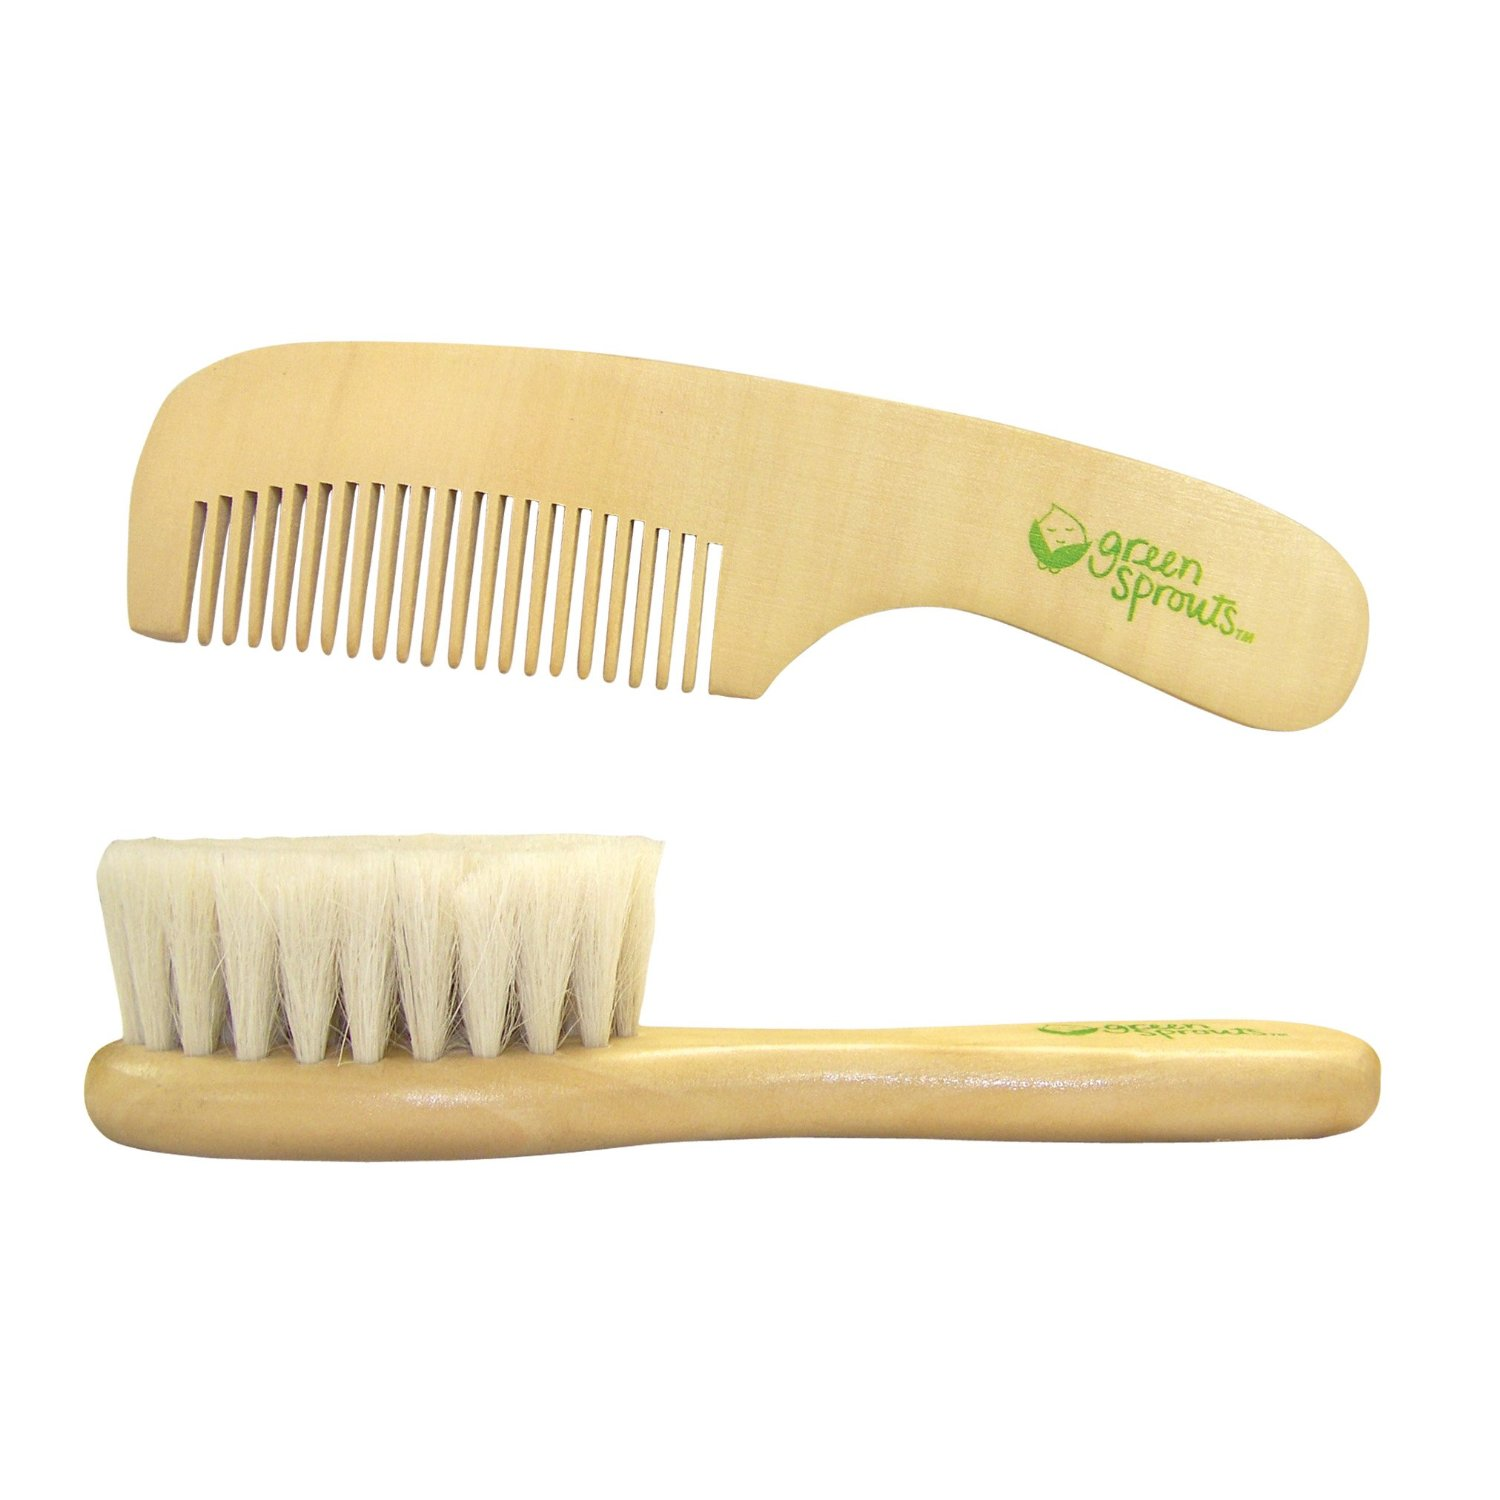 Green Sprouts Wooden Brush and Comb Set    $9.95    Wants 1